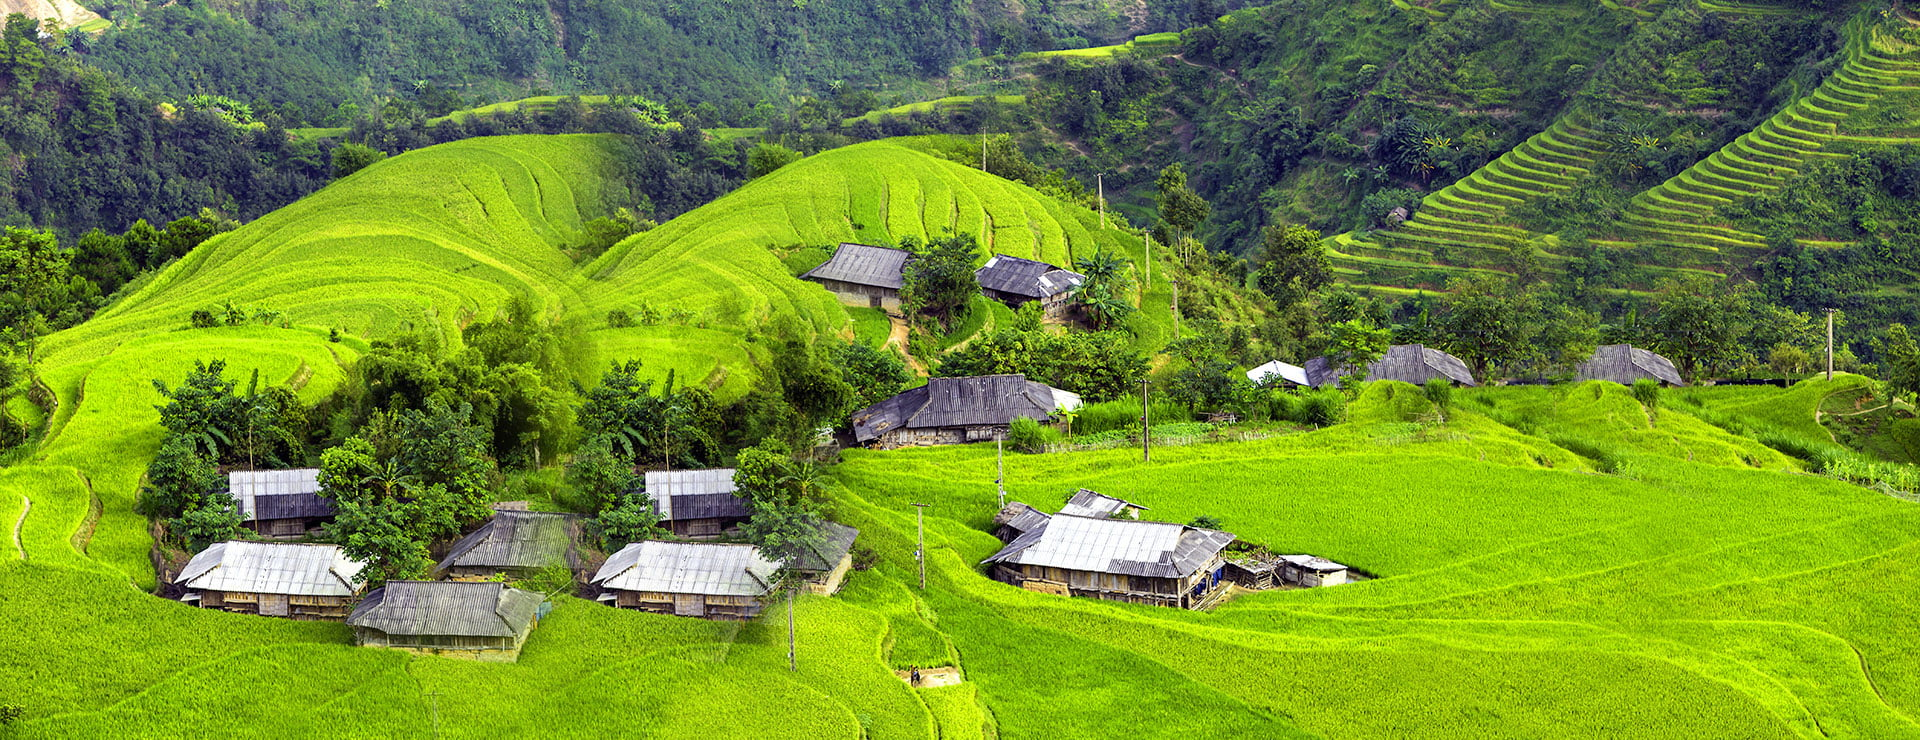 Visit these northern provinces of Vietnam in late autumn